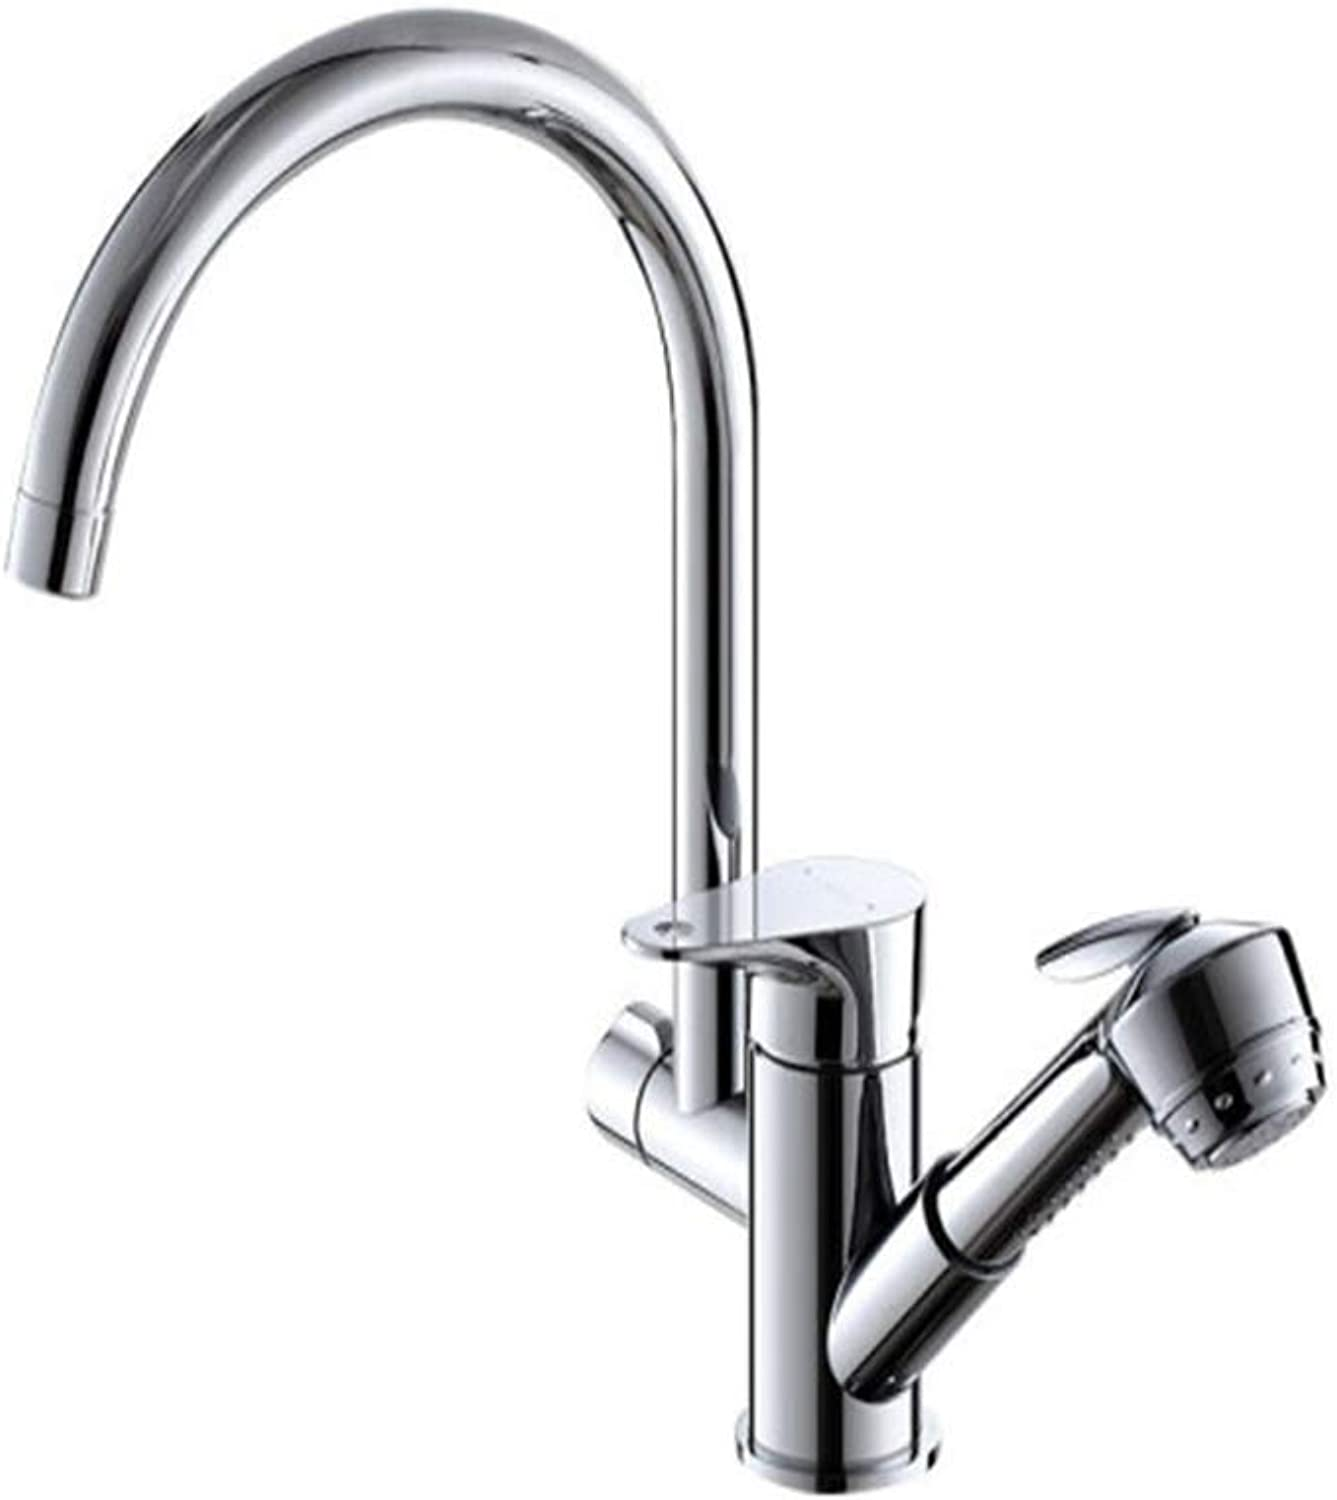 Kitchen Taps Faucet Modern Kitchen Sink Taps Stainless Steelkitchen Faucet Cold and Hot Pumping Sink Faucet All-Copper Dishwashbasin Multi-Functional Faucet